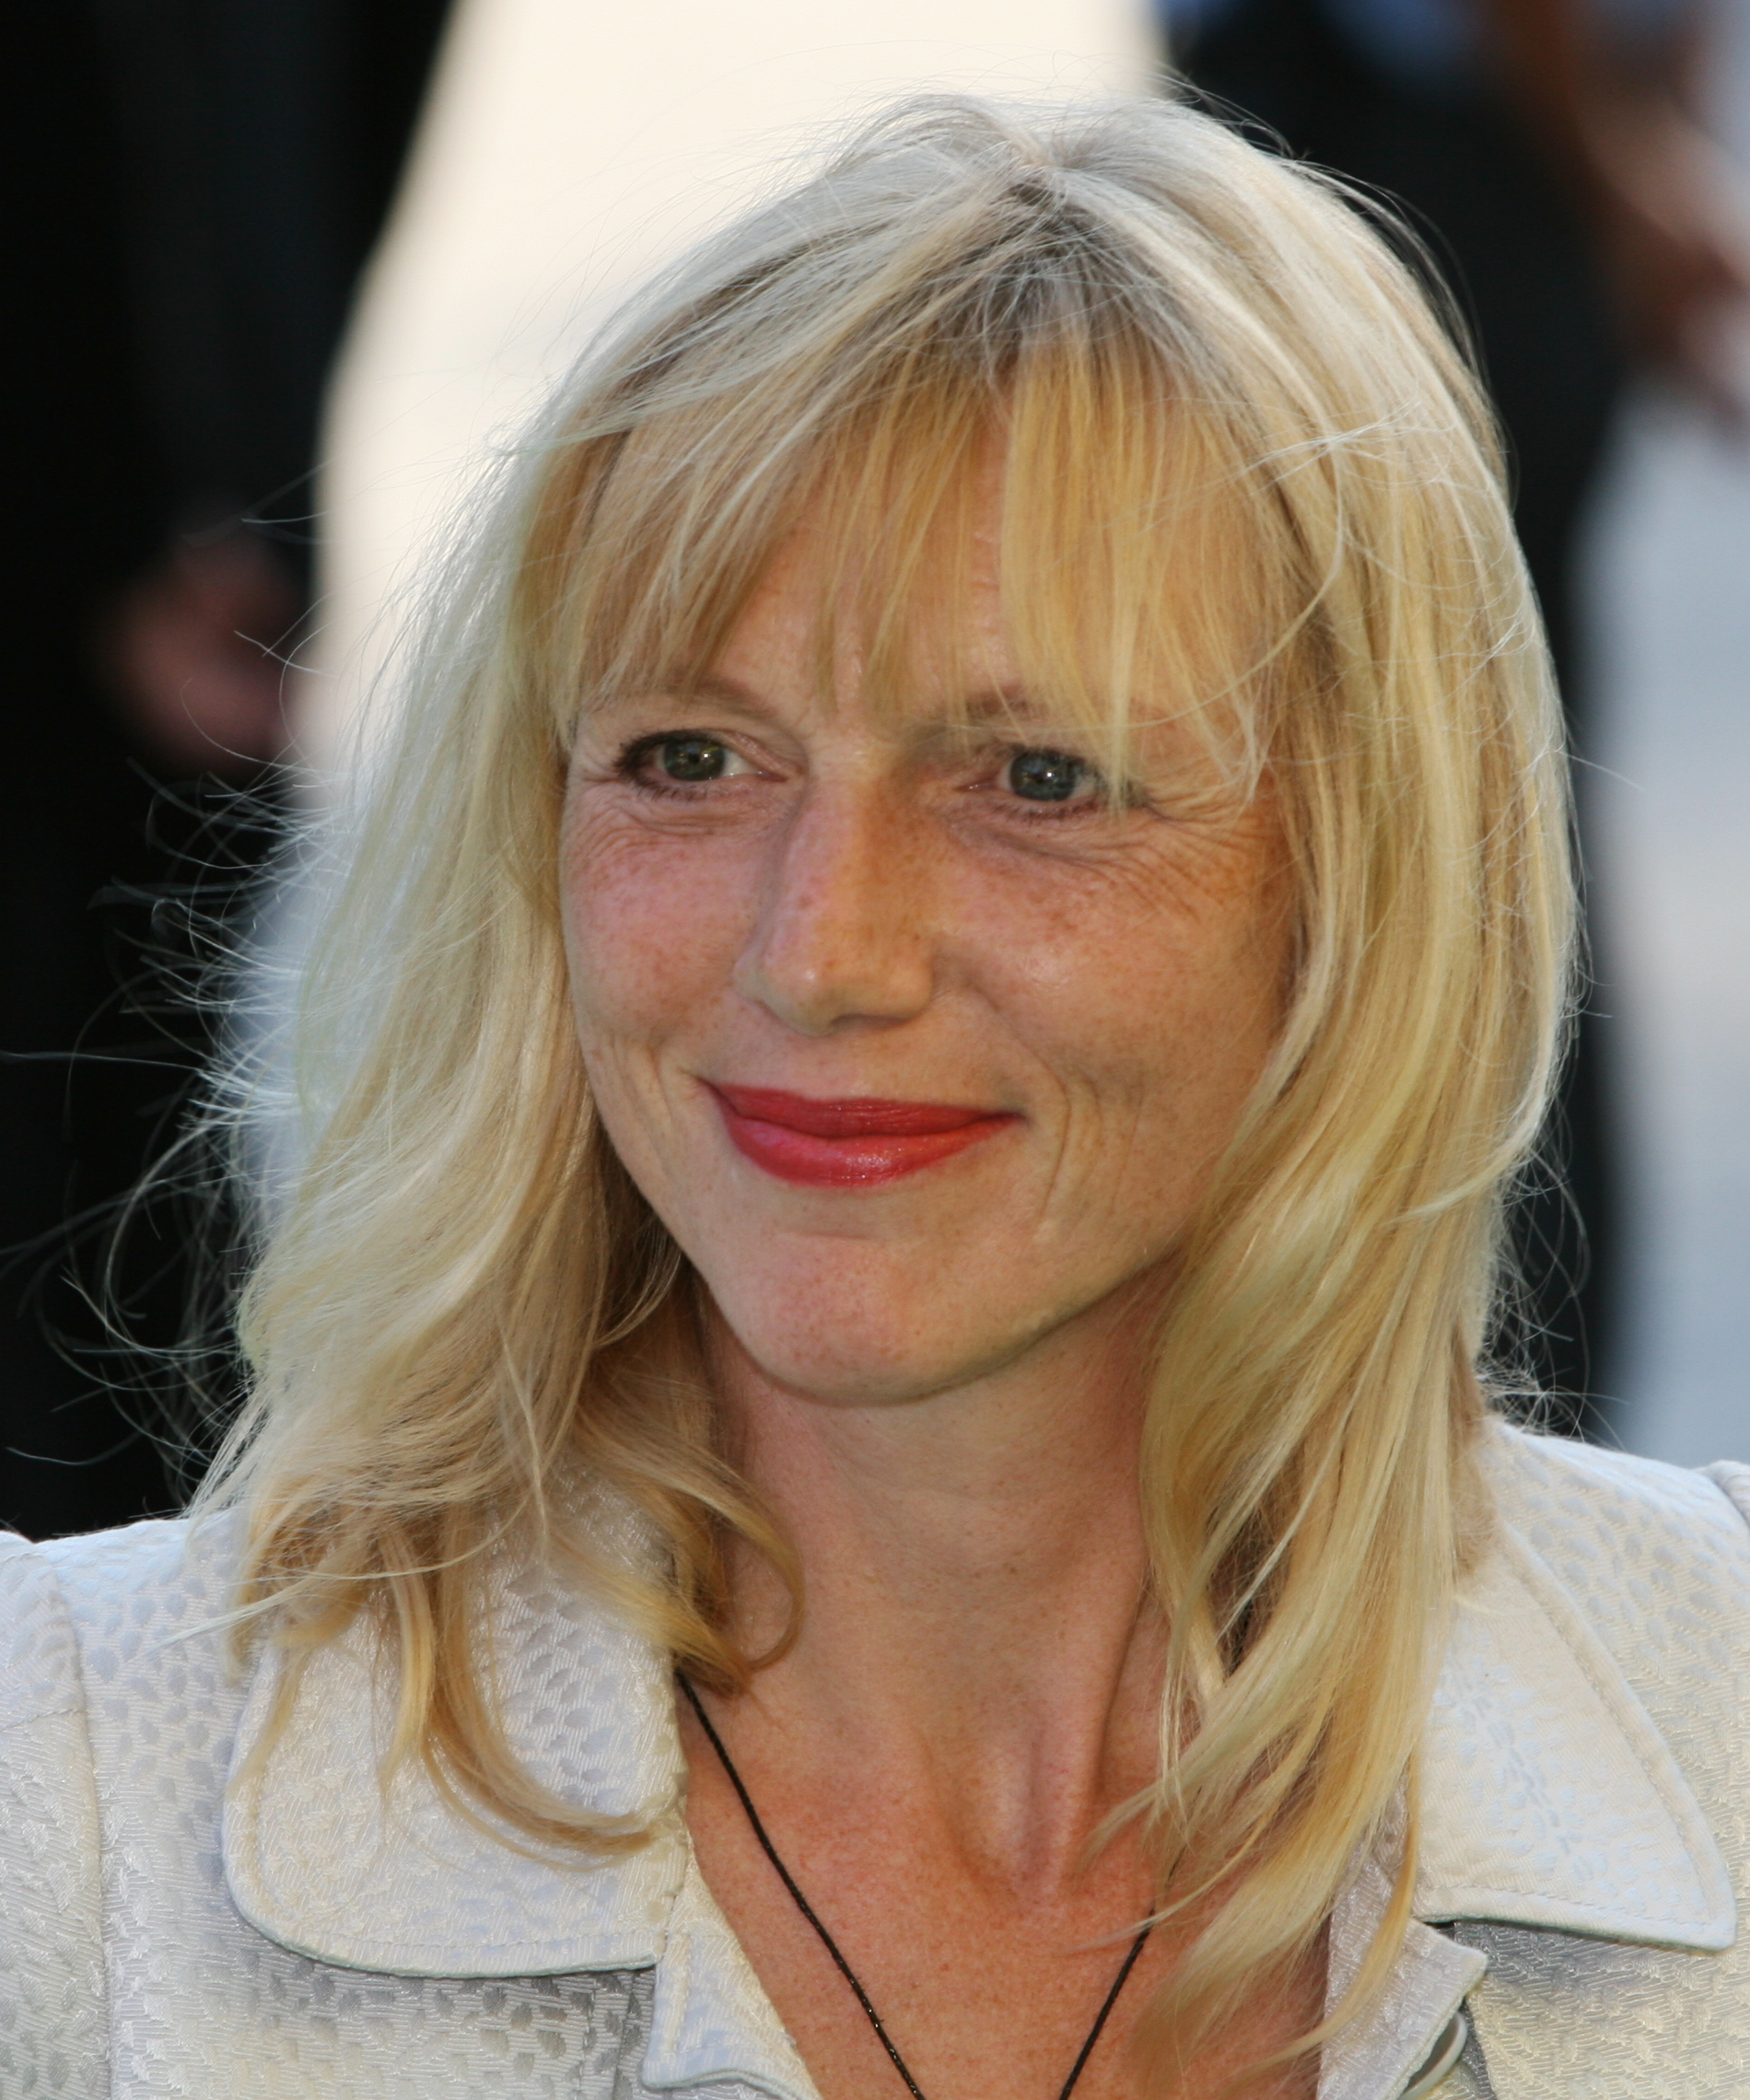 The 58-year old daughter of father (?) and mother(?) Johanna ter Steege in 2019 photo. Johanna ter Steege earned a  million dollar salary - leaving the net worth at 1.9 million in 2019